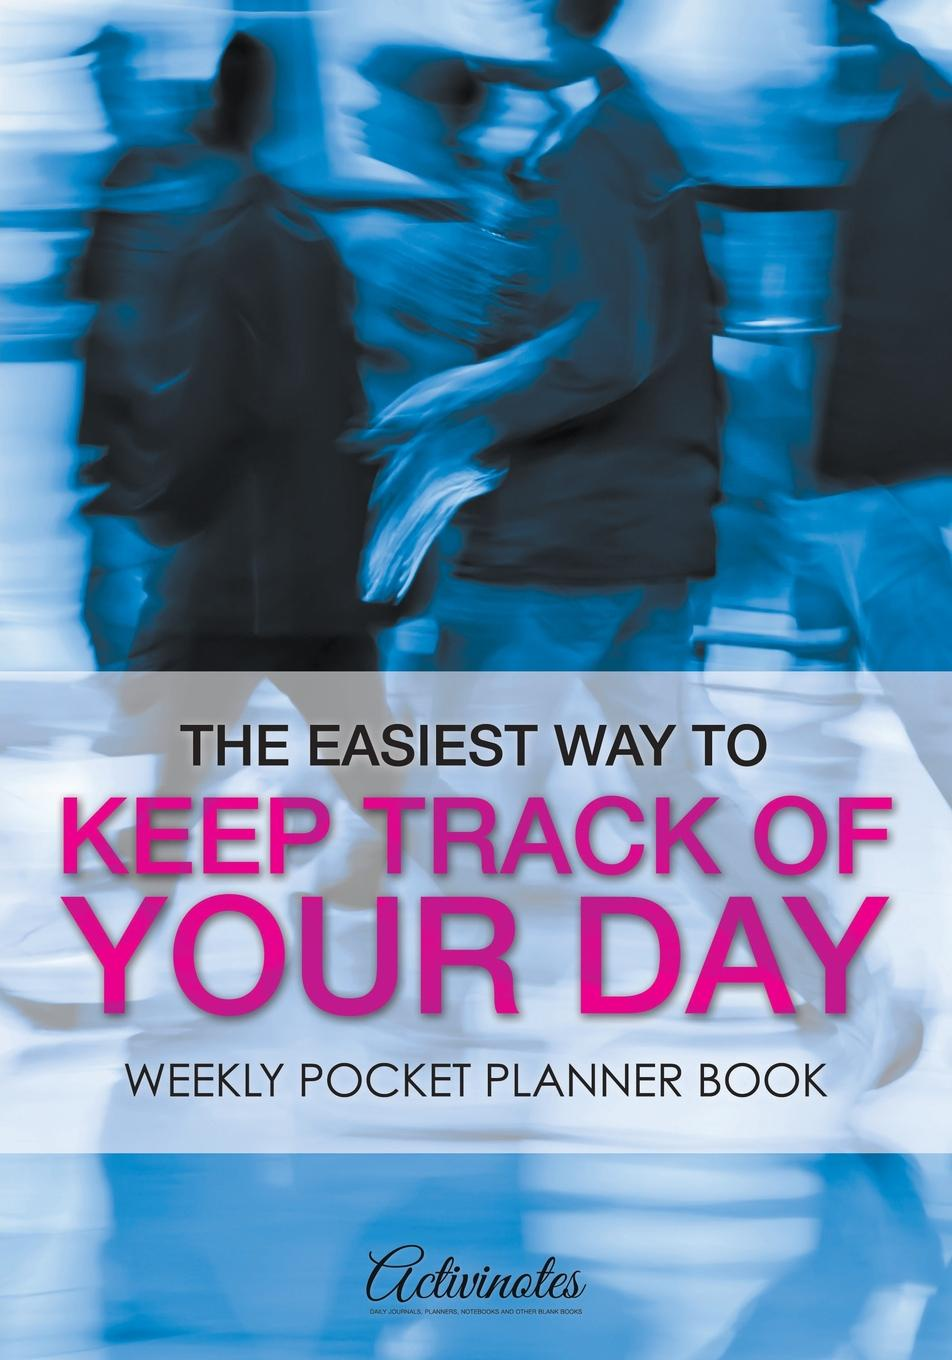 Activinotes The Easiest Way to Keep Track of Your Day. Weekly Pocket Planner Book